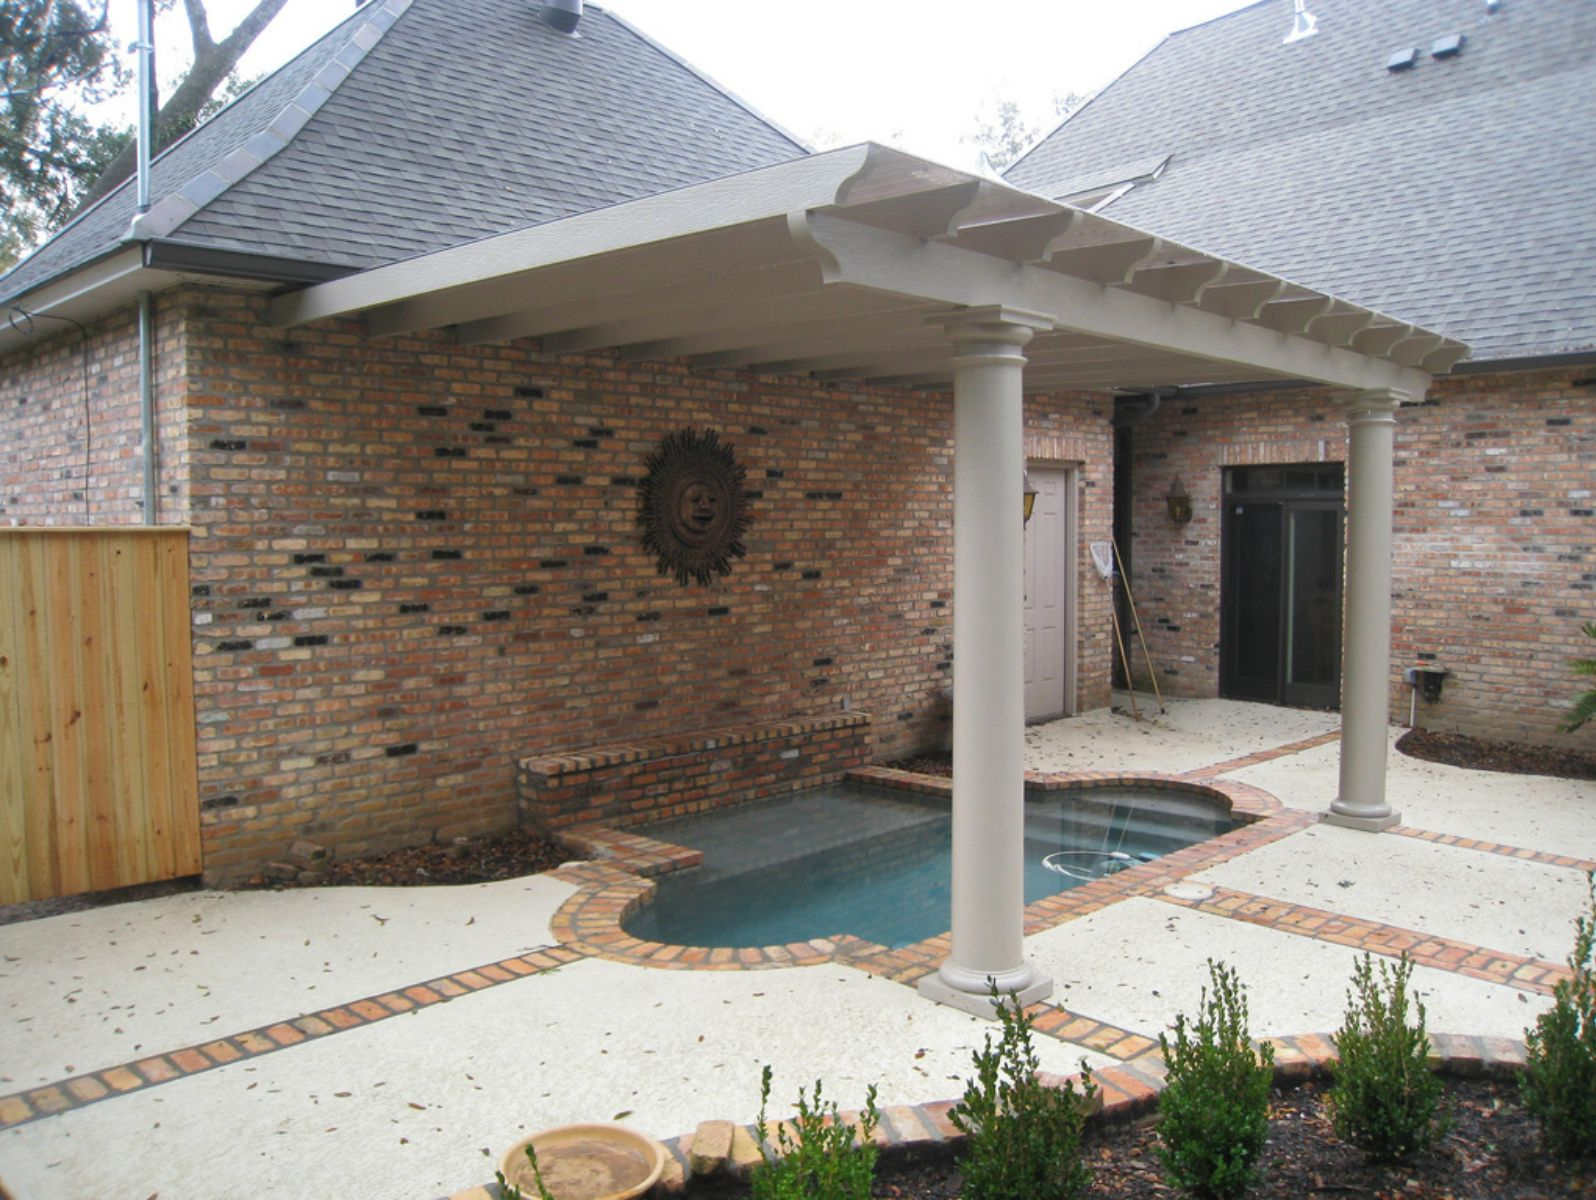 Snap N Lock Sip Patio Cover Utilizing Scalloped Rafters And Circular Columns Building Systems Patio Covered Patio